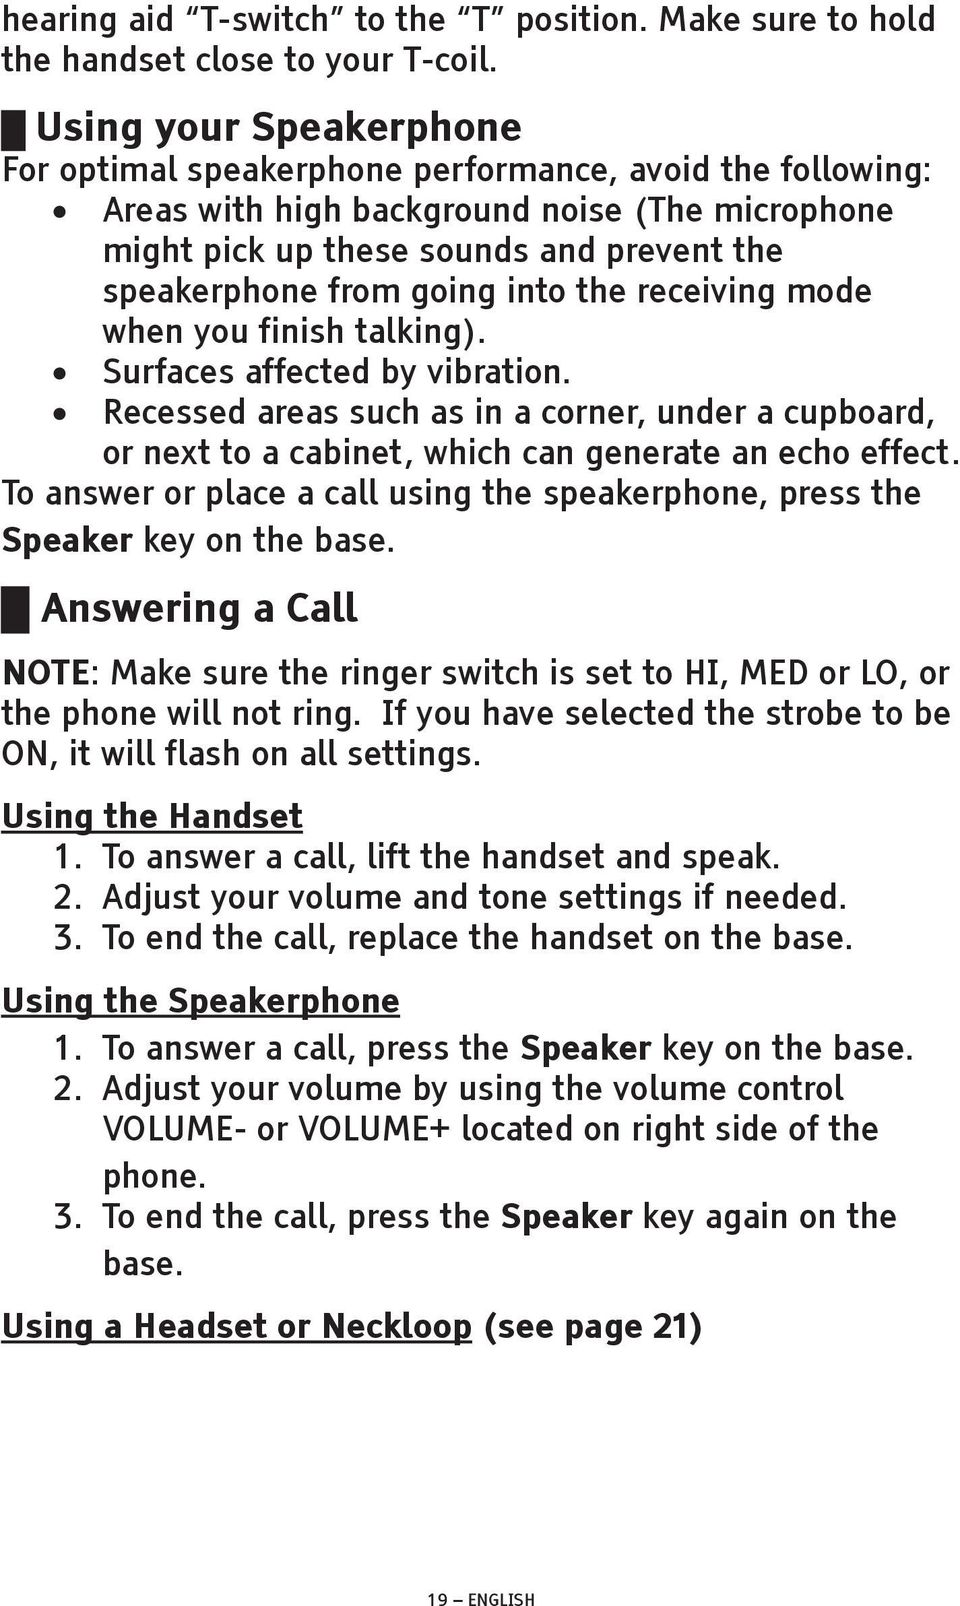 into the receiving mode when you finish talking). Surfaces affected by vibration. Recessed areas such as in a corner, under a cupboard, or next to a cabinet, which can generate an echo effect.